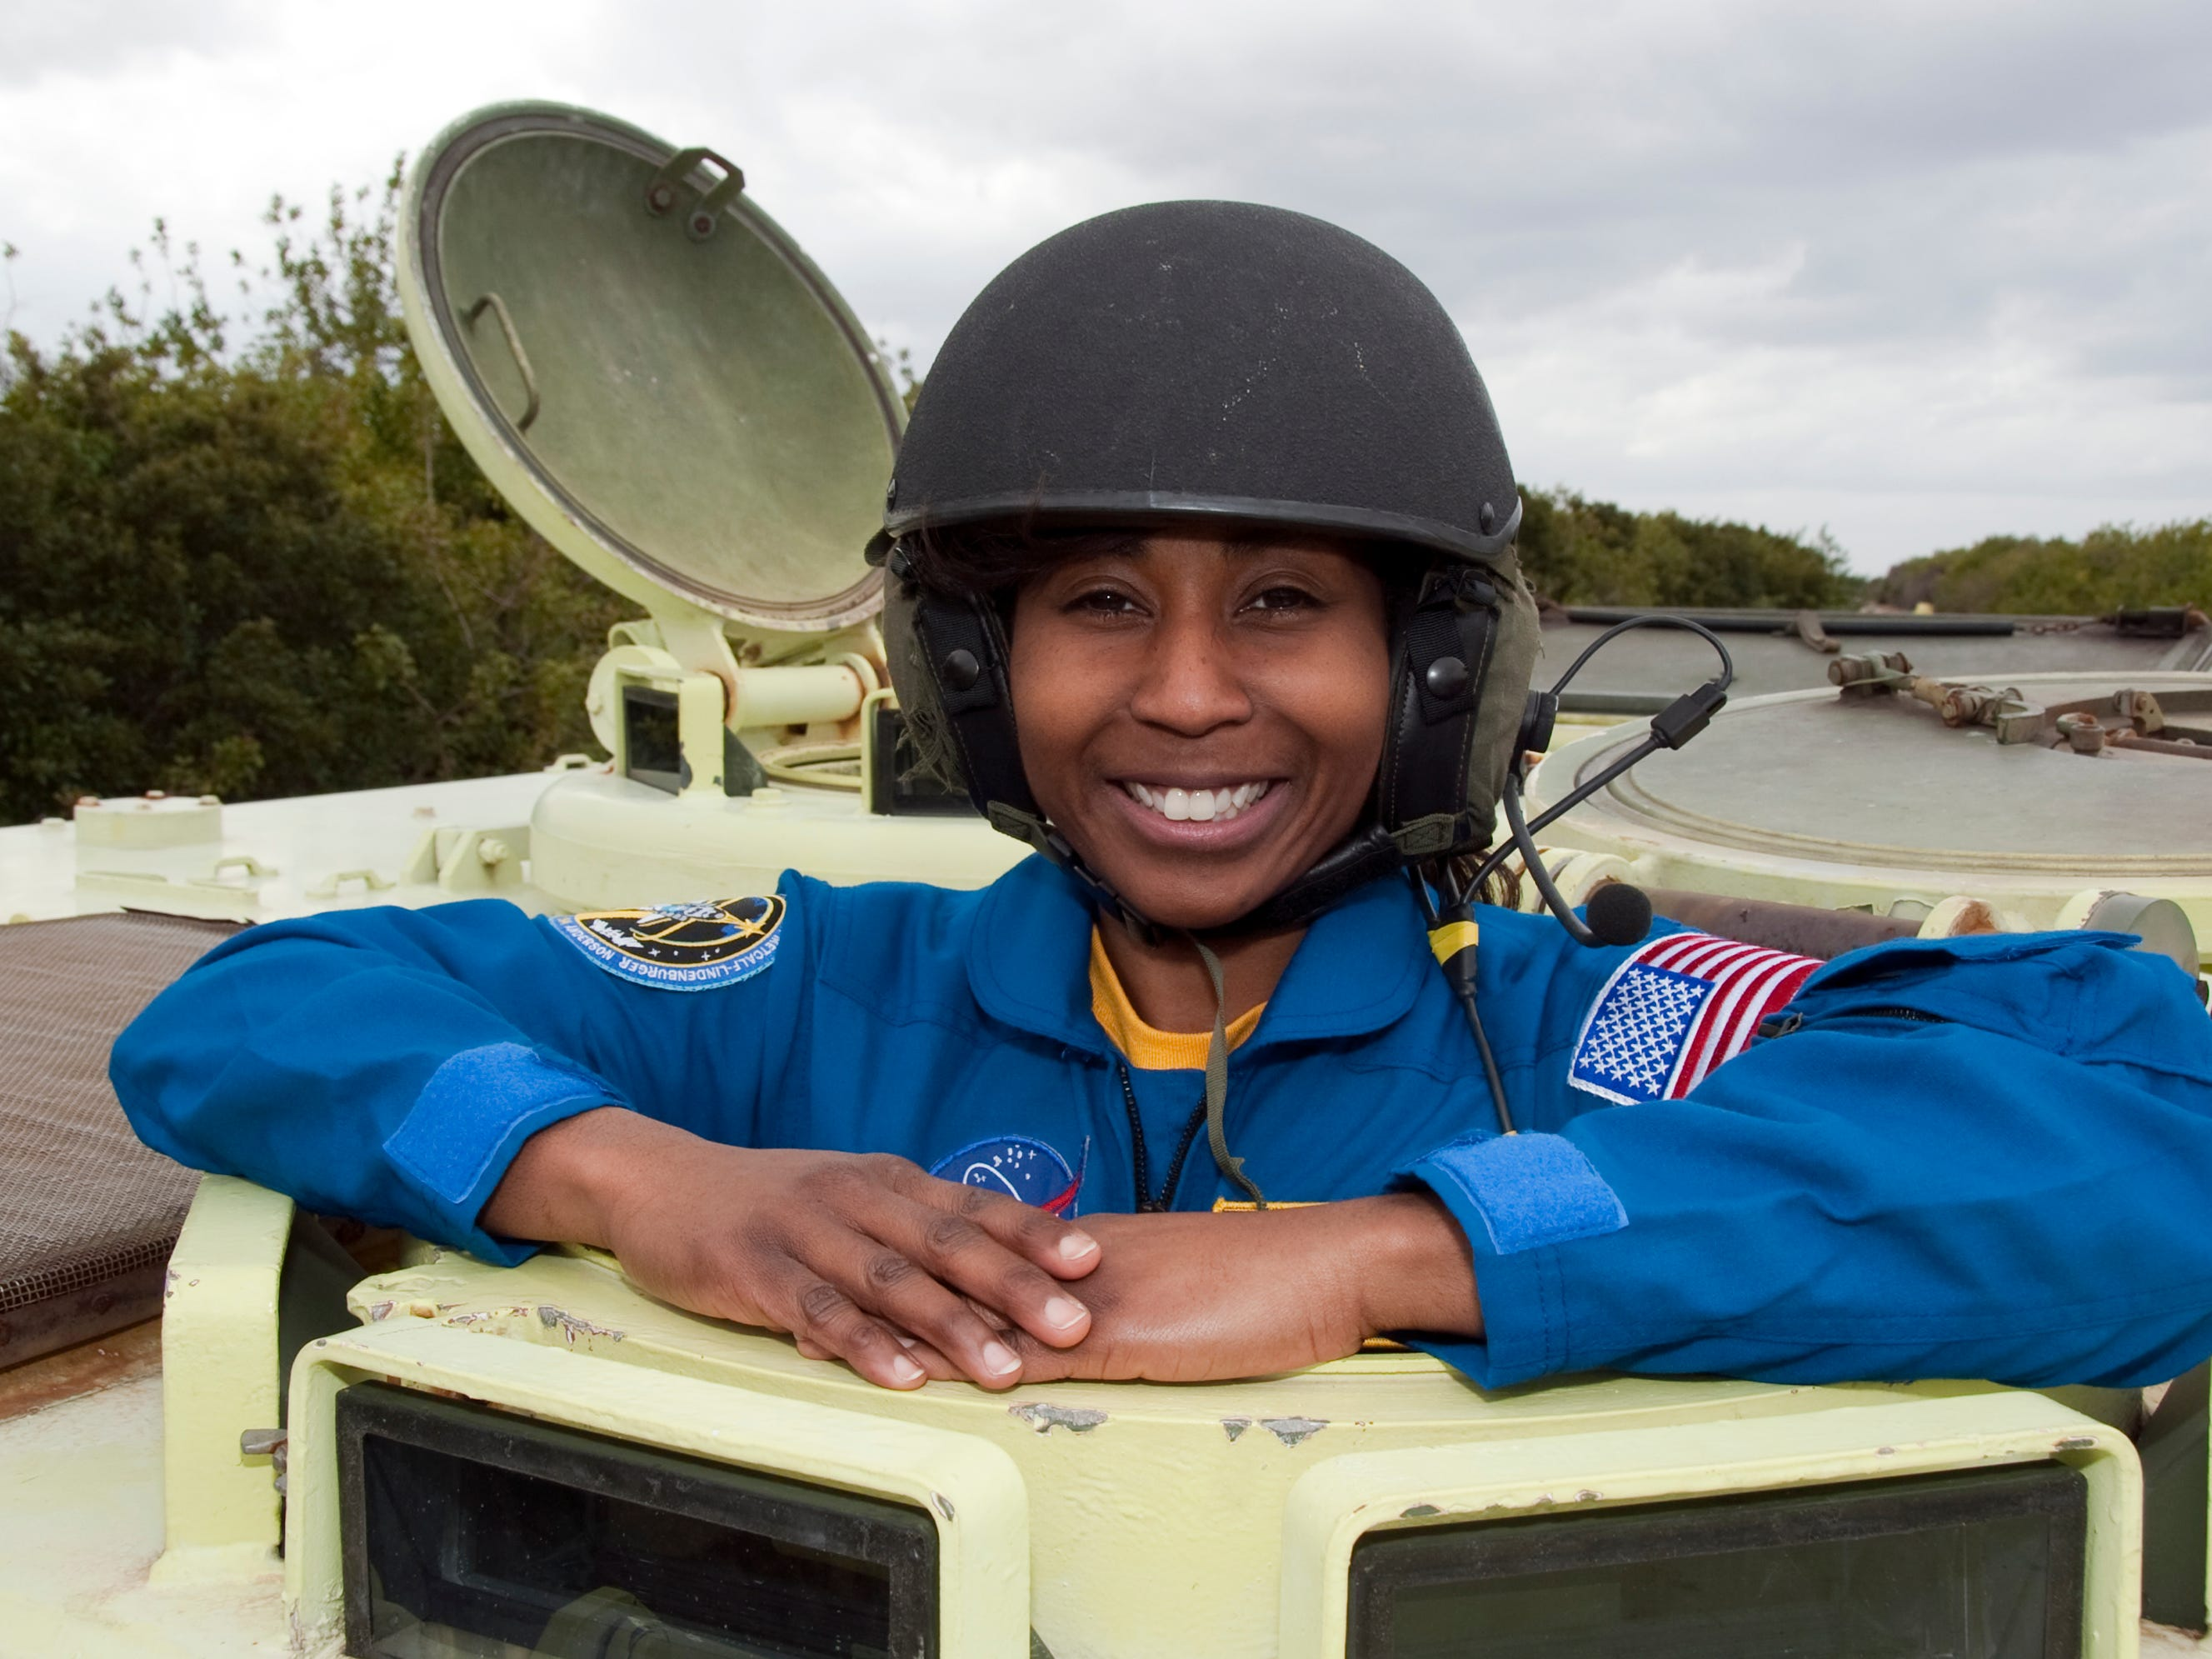 At NASA's Kennedy Space Center in Florida, STS-131 Mission Specialist Stephanie Wilson prepares to practice driving an M-113 armored personnel carrier. Wilson is the second African American woman to go into space, after Mae Jemison. Her 42 days in space are the most of any African American astronaut, male or female.